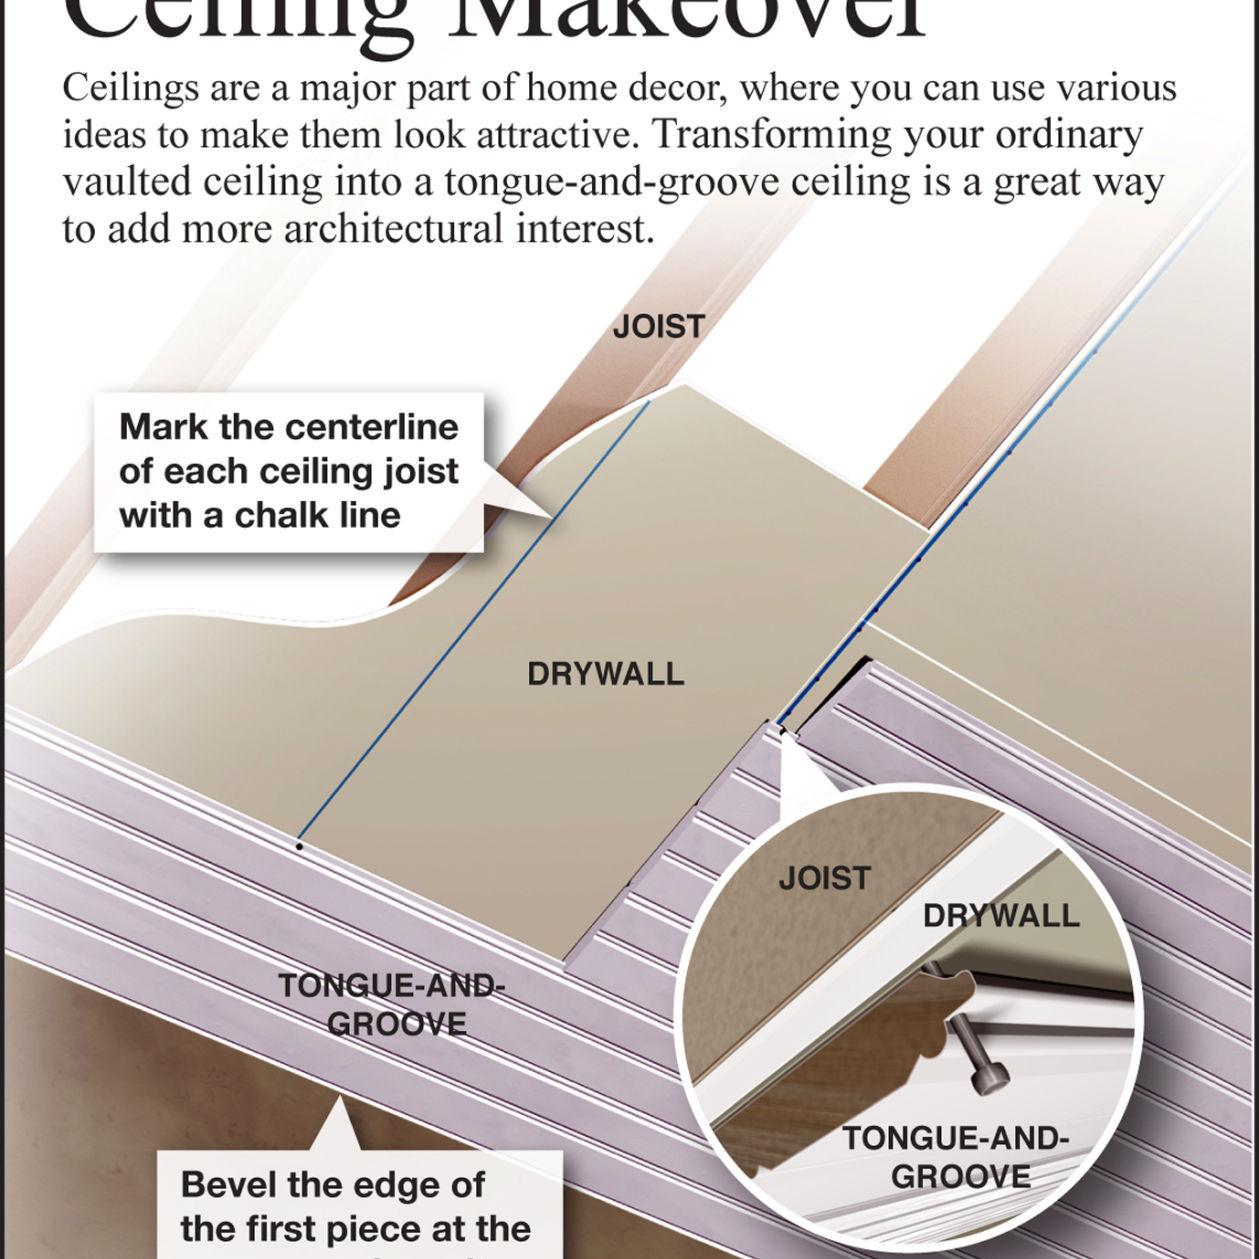 Install Tongue And Groove Wood On Sloped Ceiling Siouxland Homes Siouxcityjournal Com